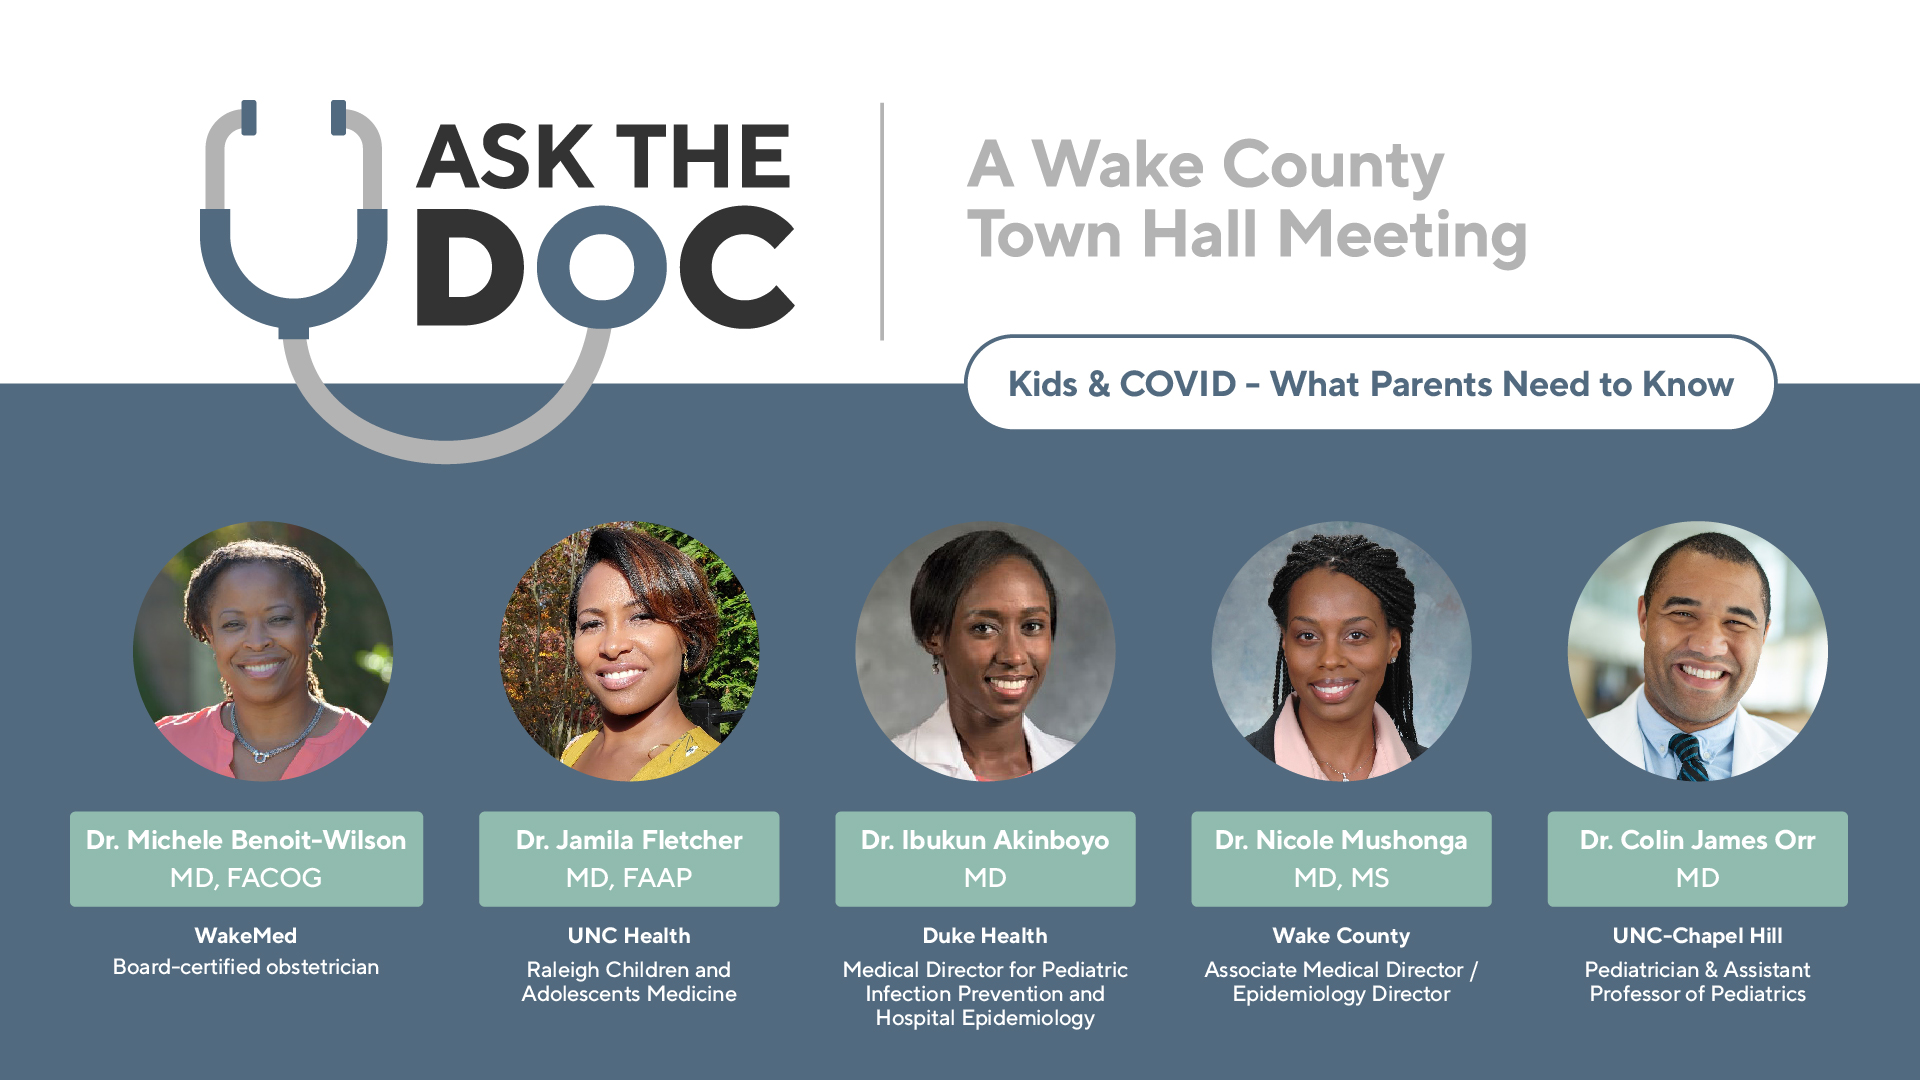 Ask the Doc Facebook ad, listing panelists